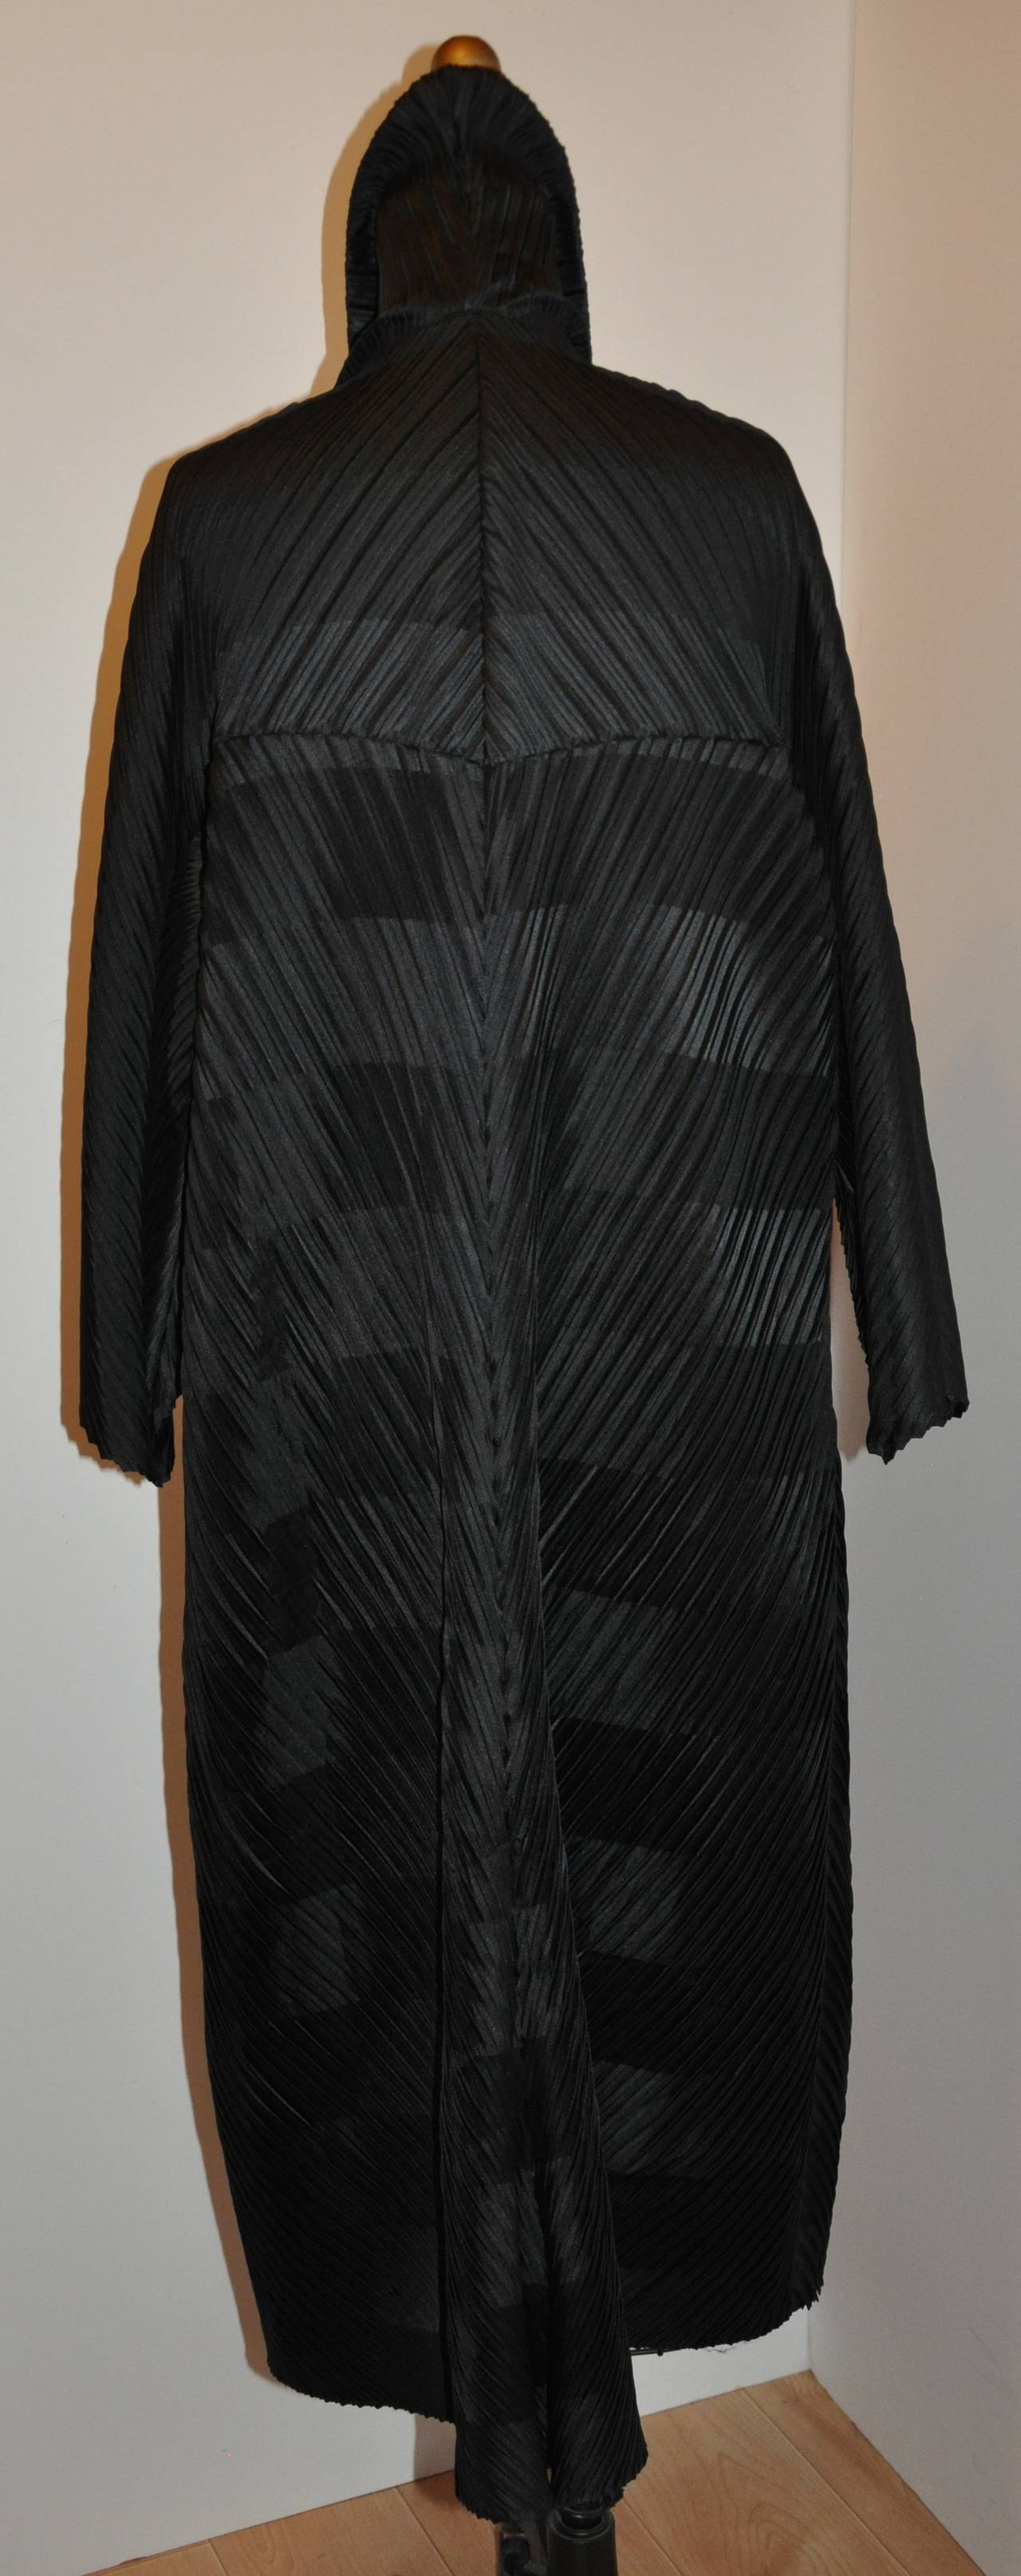 Issey Miyake signature pleated medium-weight multi-directional button coat measures 47